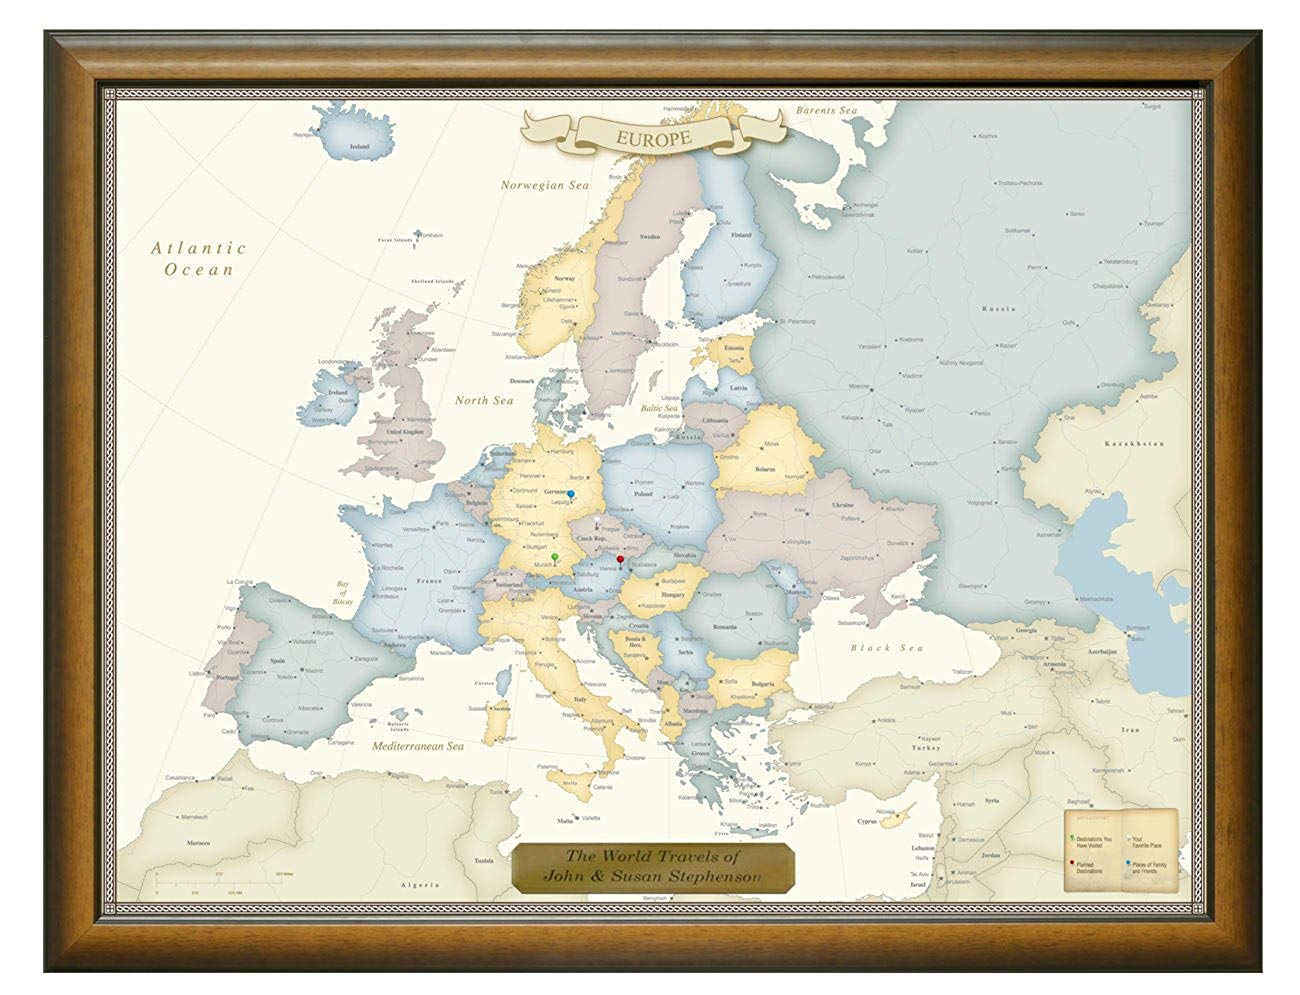 Personalized Push Pin Europe Travel Map with Custom Brushed Gold Plaque